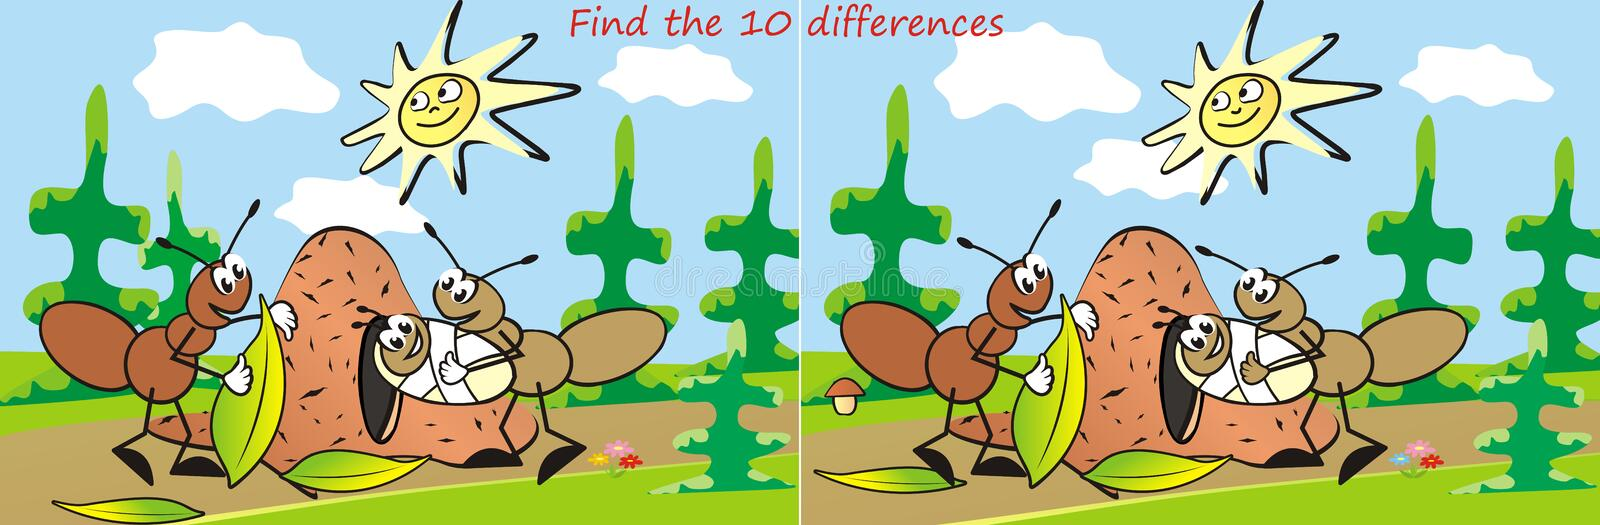 Ant, game, find ten differences vector illustration